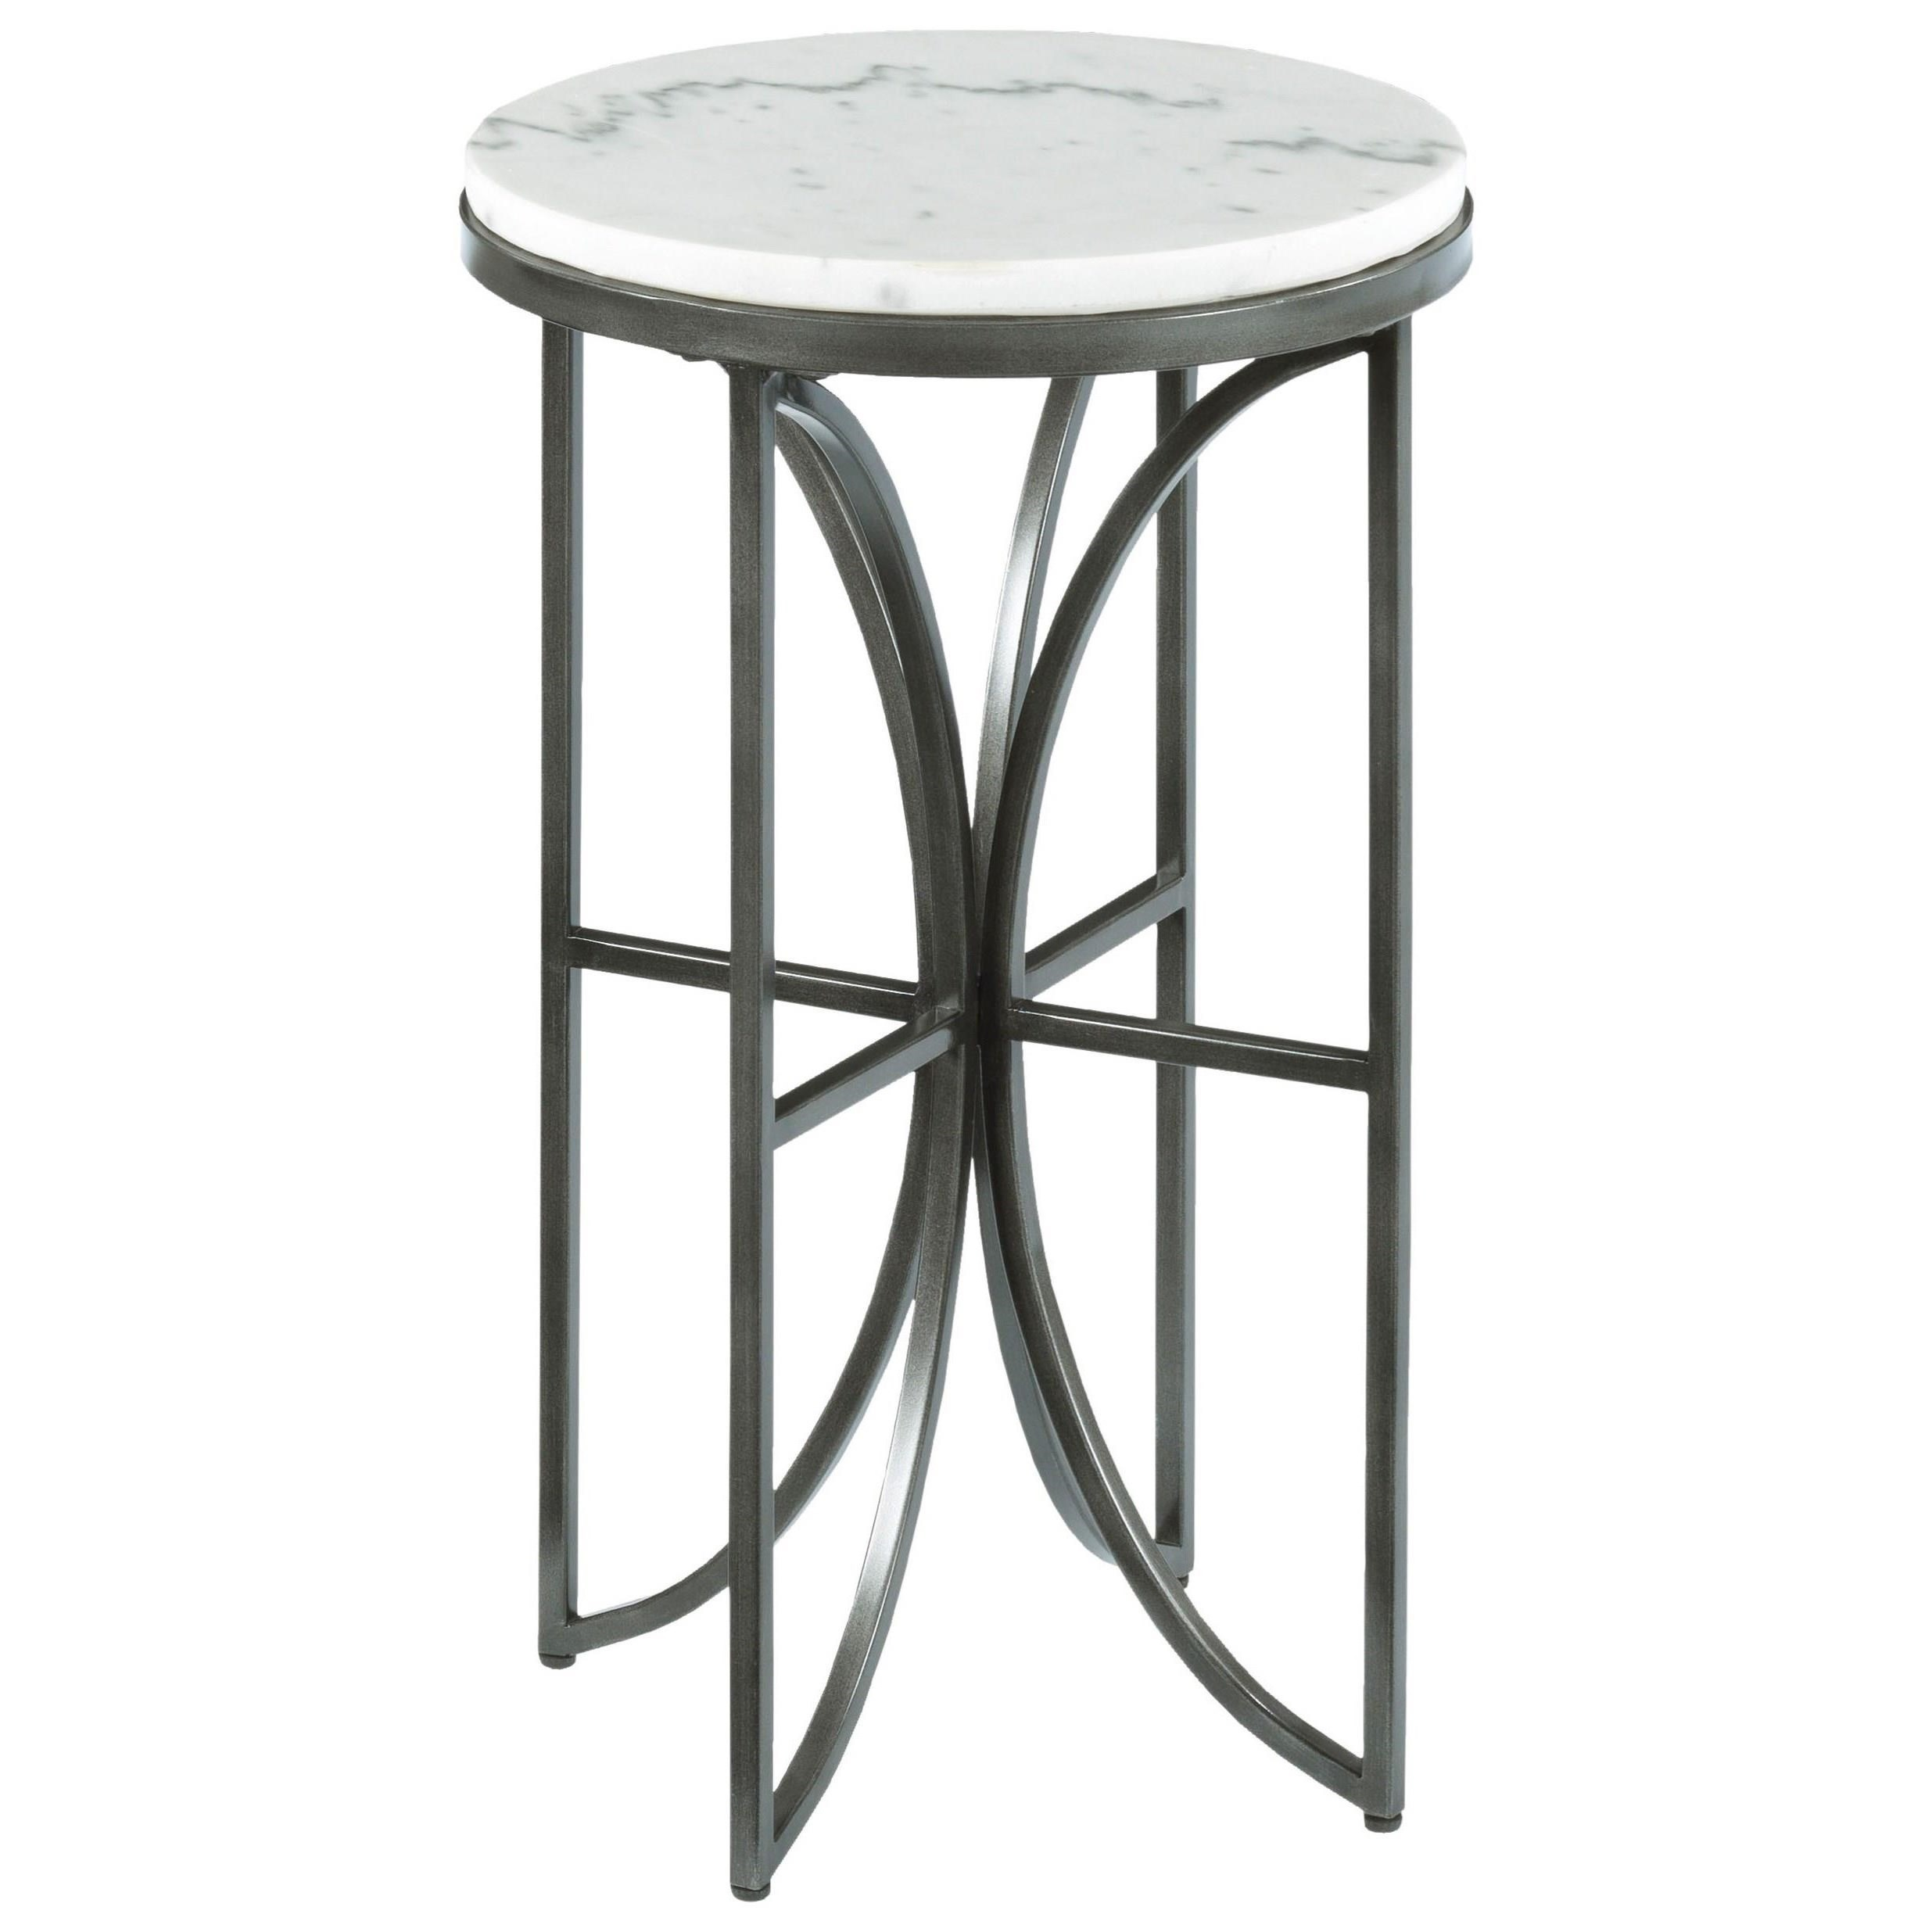 Hammary Impact Small Round Accent Table With Marble Top Lindy S Furniture Company End Table